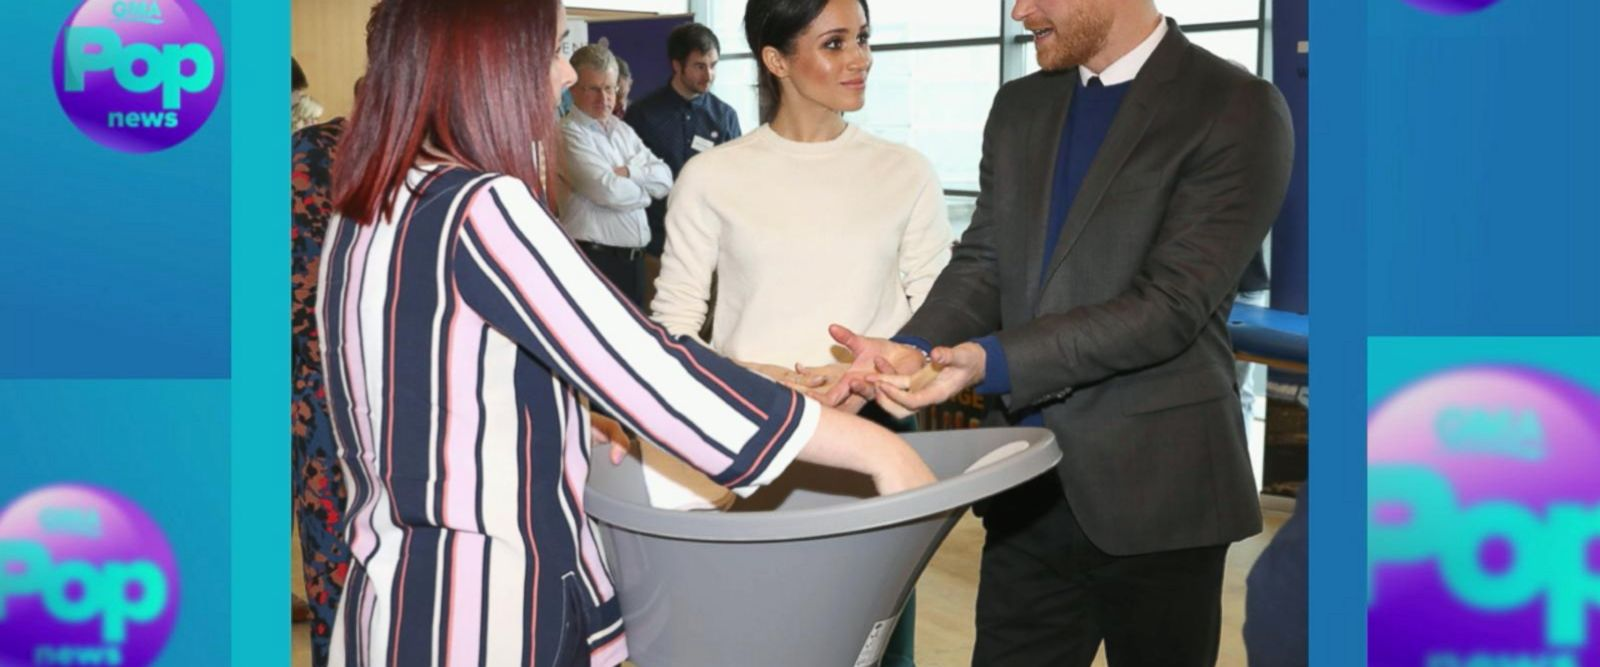 VIDEO: Meghan Markle and Prince Harry send out wedding invitations